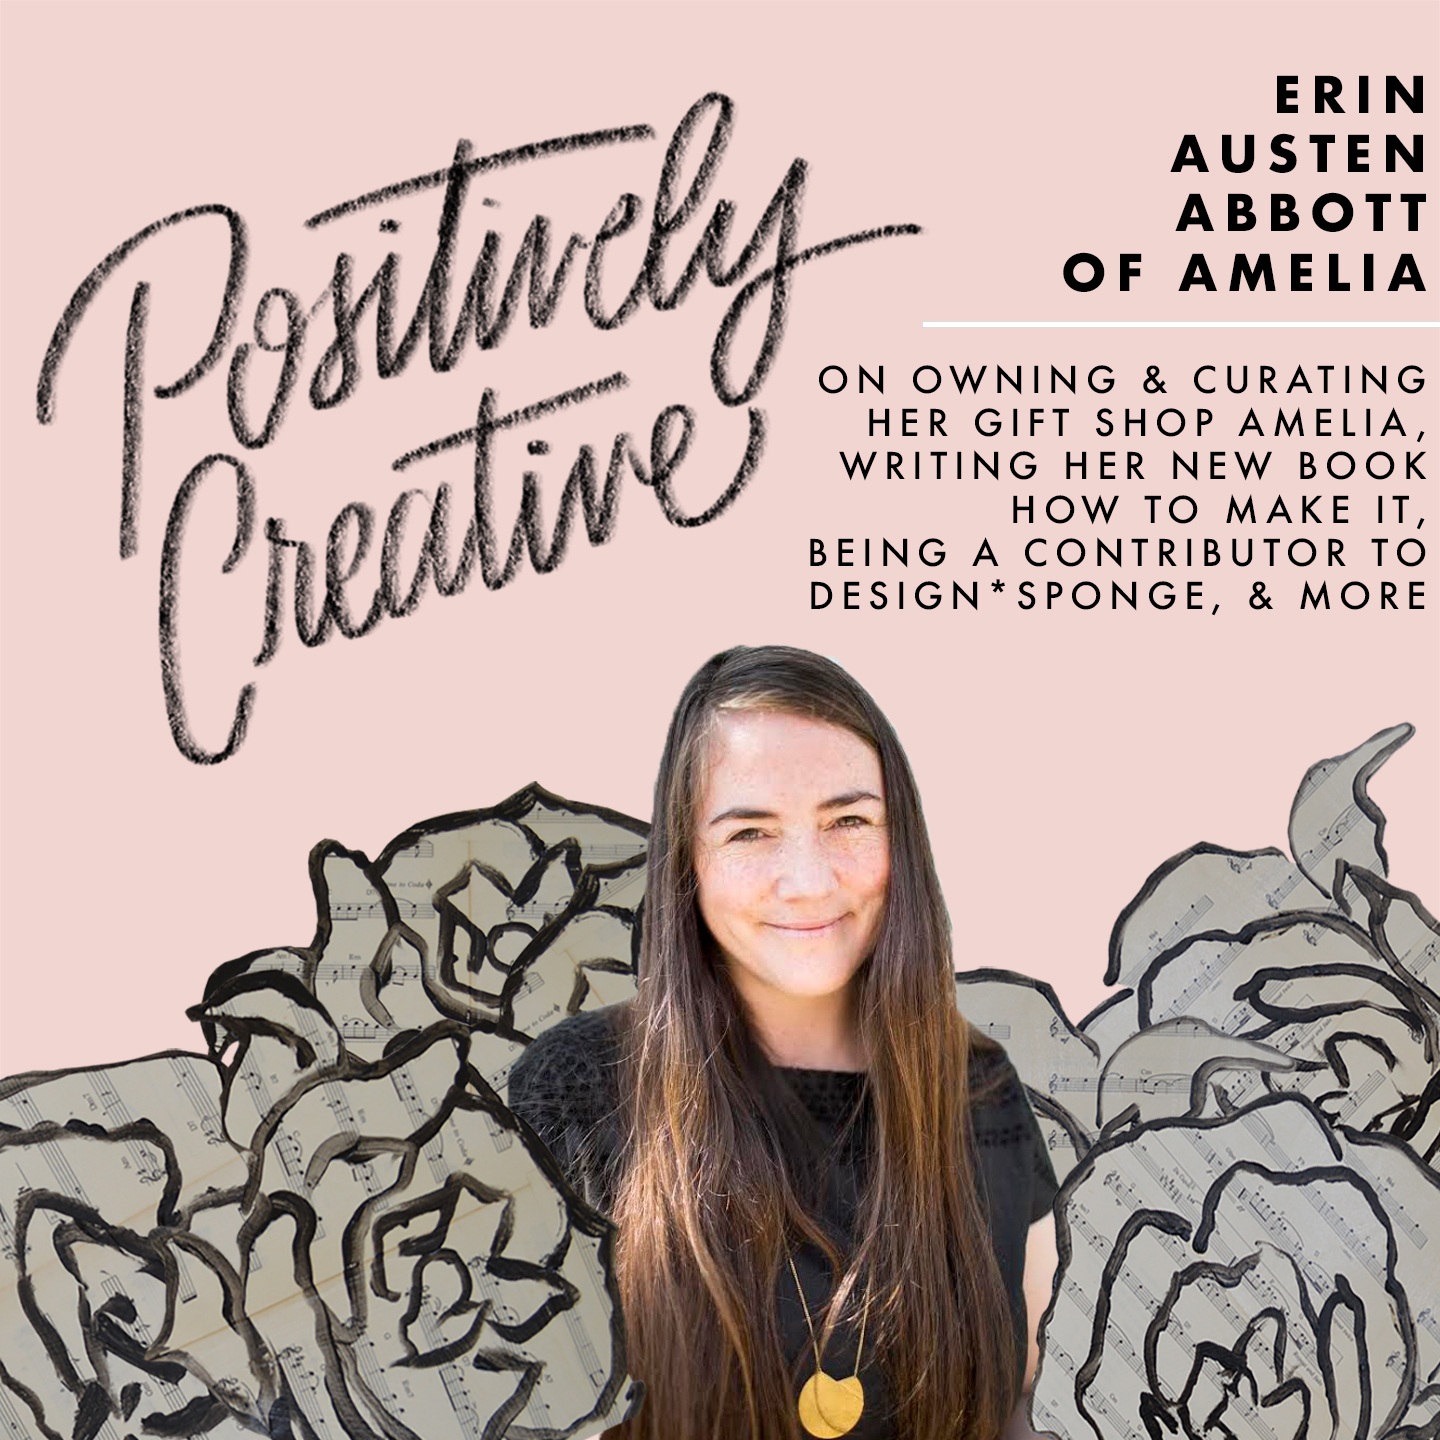 Artwork for 018 - Erin Austen Abbott of Amelia on Owning and Curating for Her Gift Shop Amelia, Writing Her New Book, How to Make It, Being a Contributor to Design*Sponge, & More